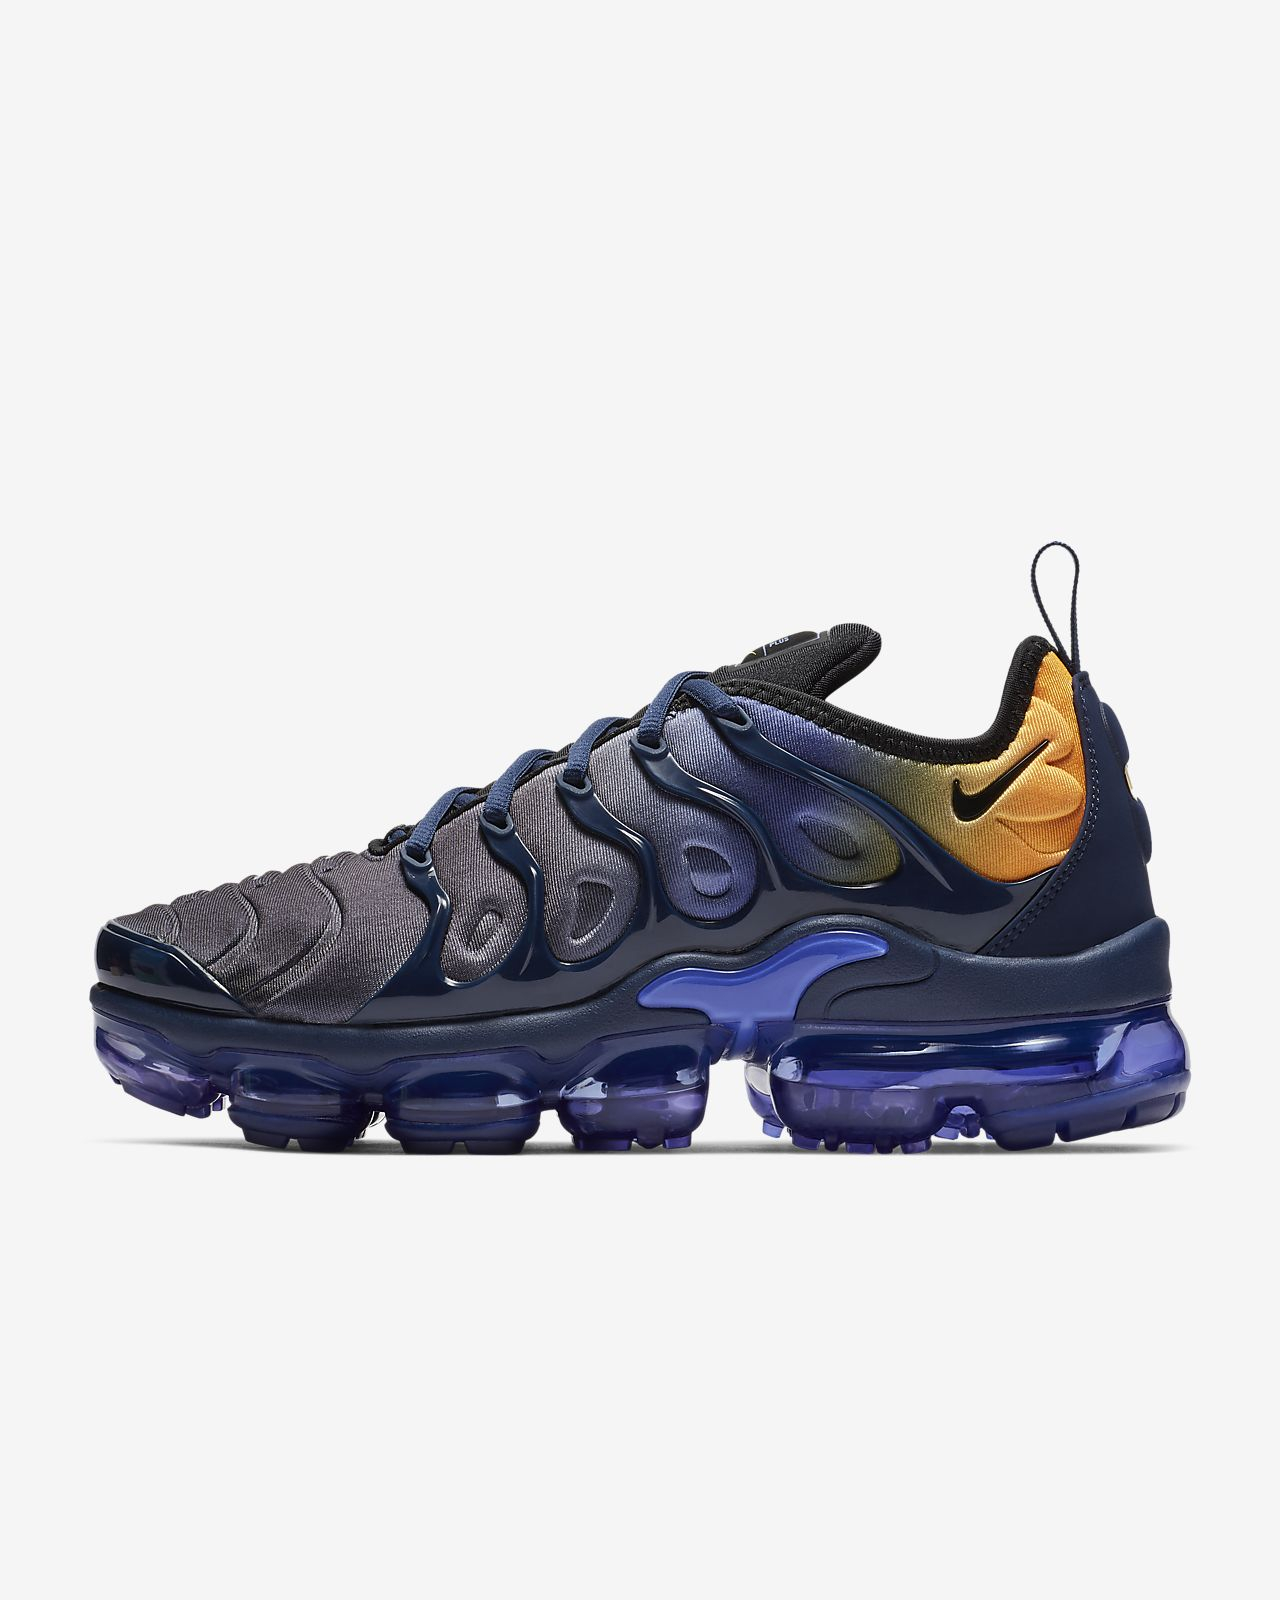 8d34eeb31c9a7c Nike Air VaporMax Plus Women s Shoe. Nike.com